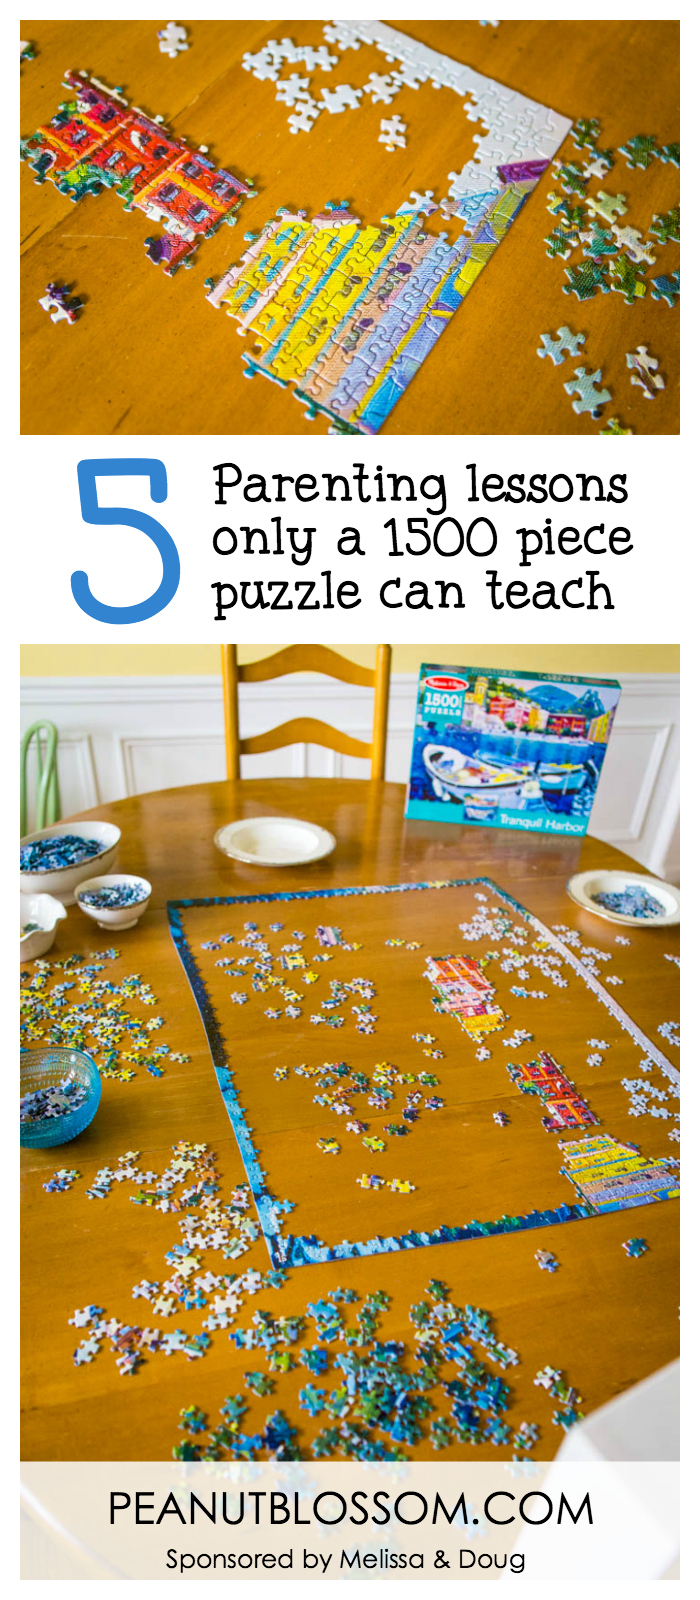 5 parenting lessons only a 1500 piece puzzle can teach